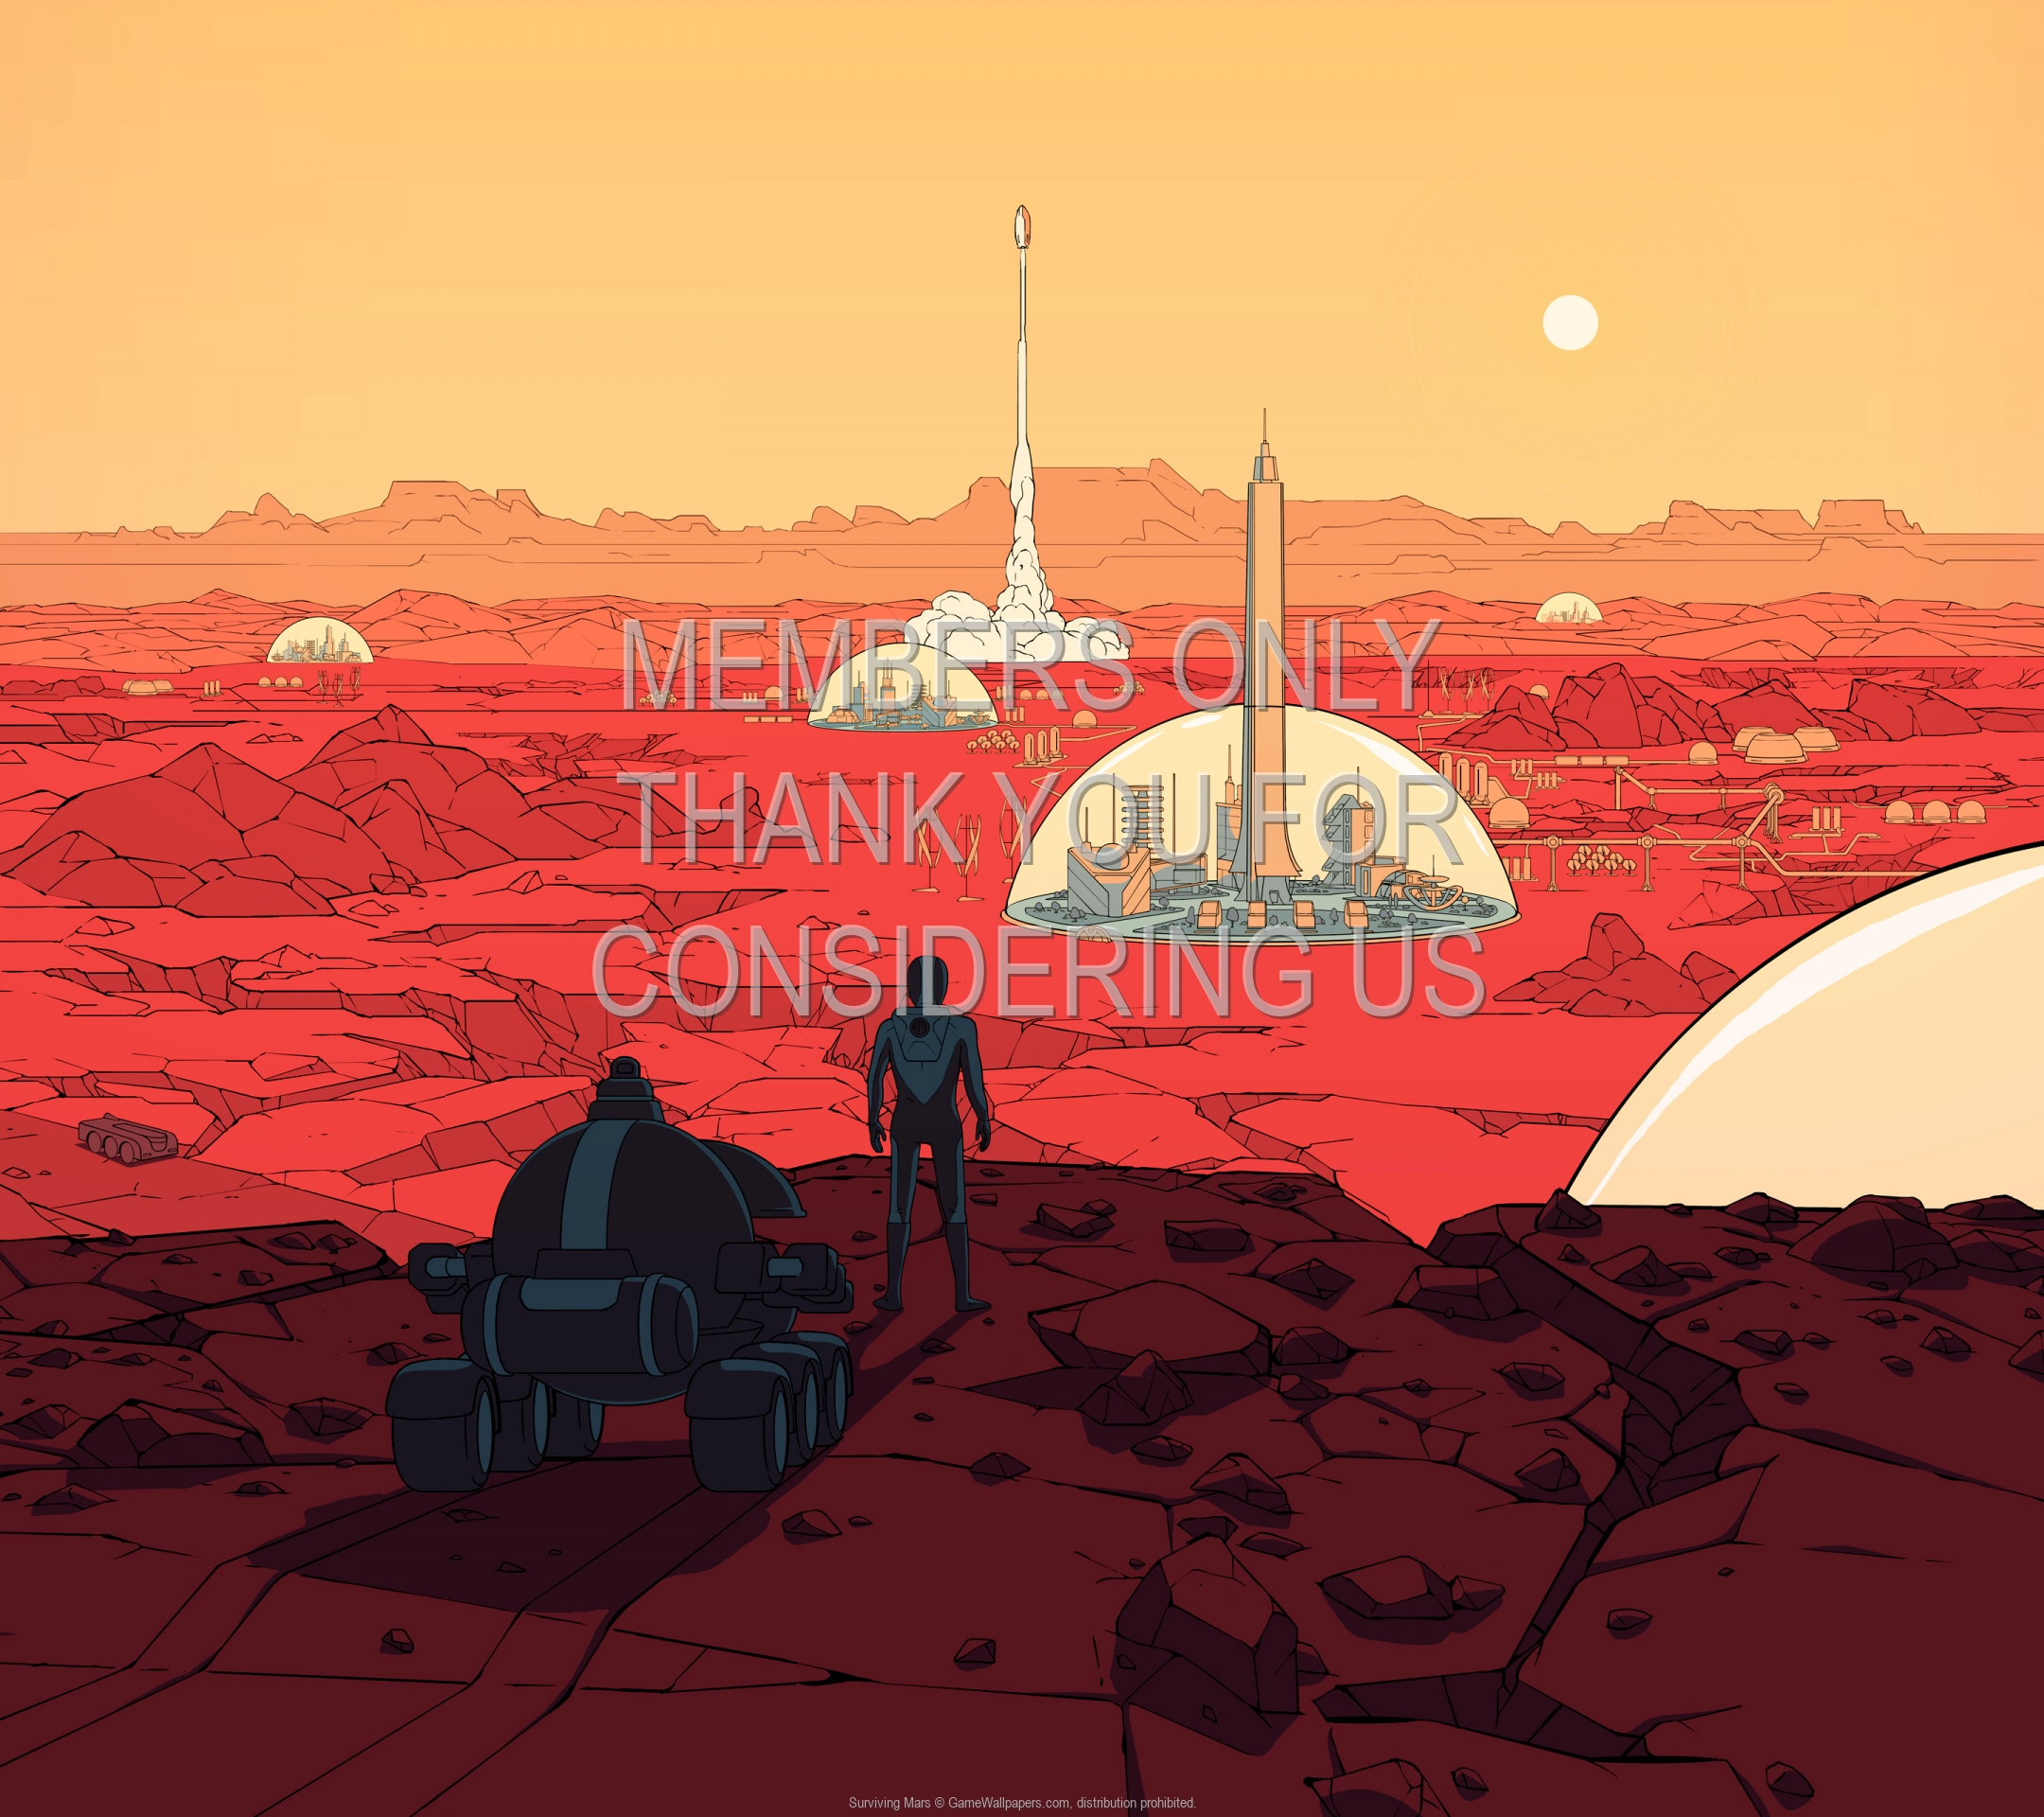 Surviving Mars 1920x1080 Mobile wallpaper or background 01